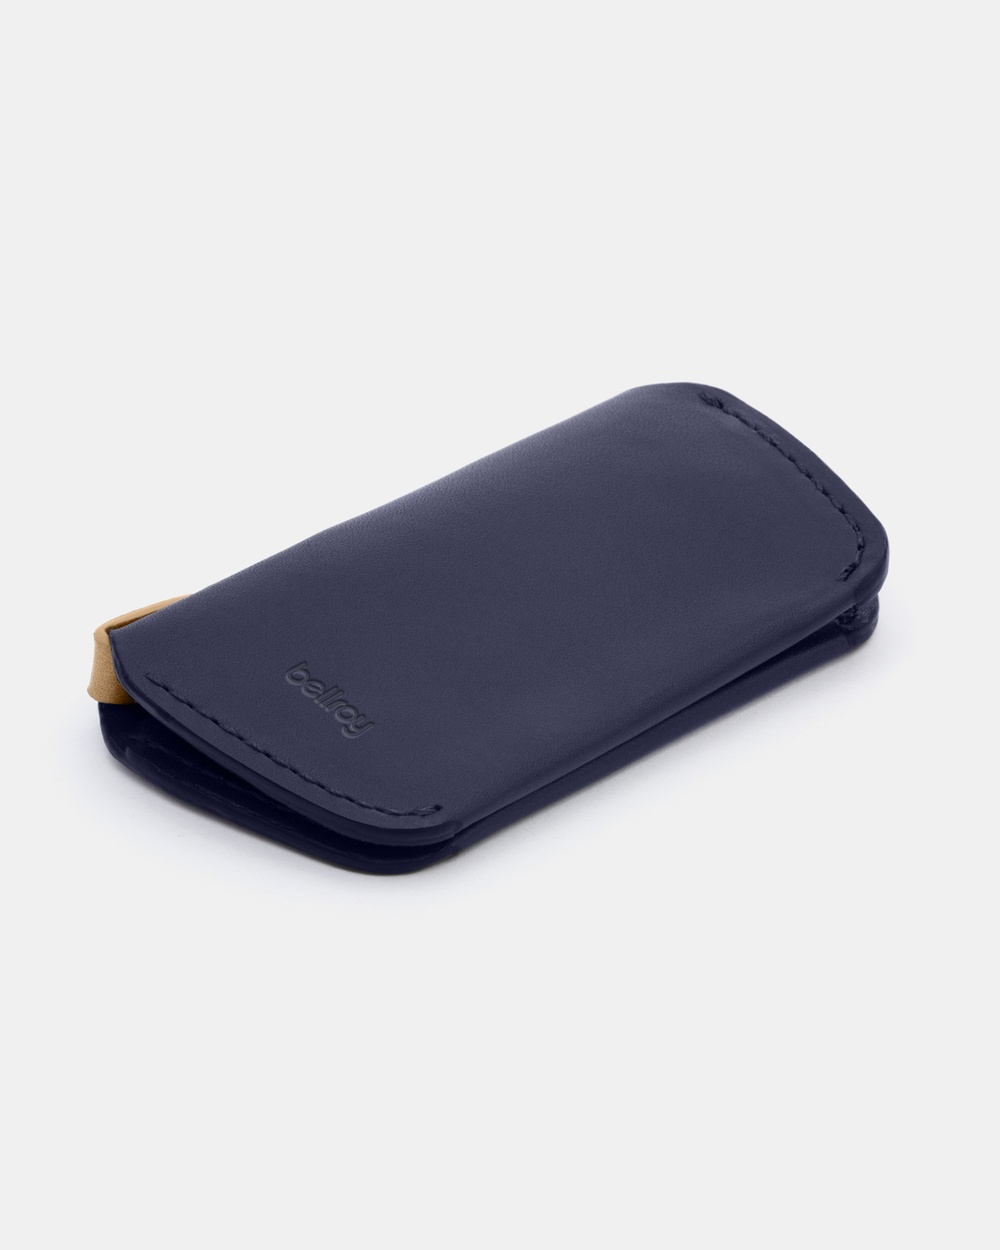 Bellroy Key Cover Second Edition Rings Navy